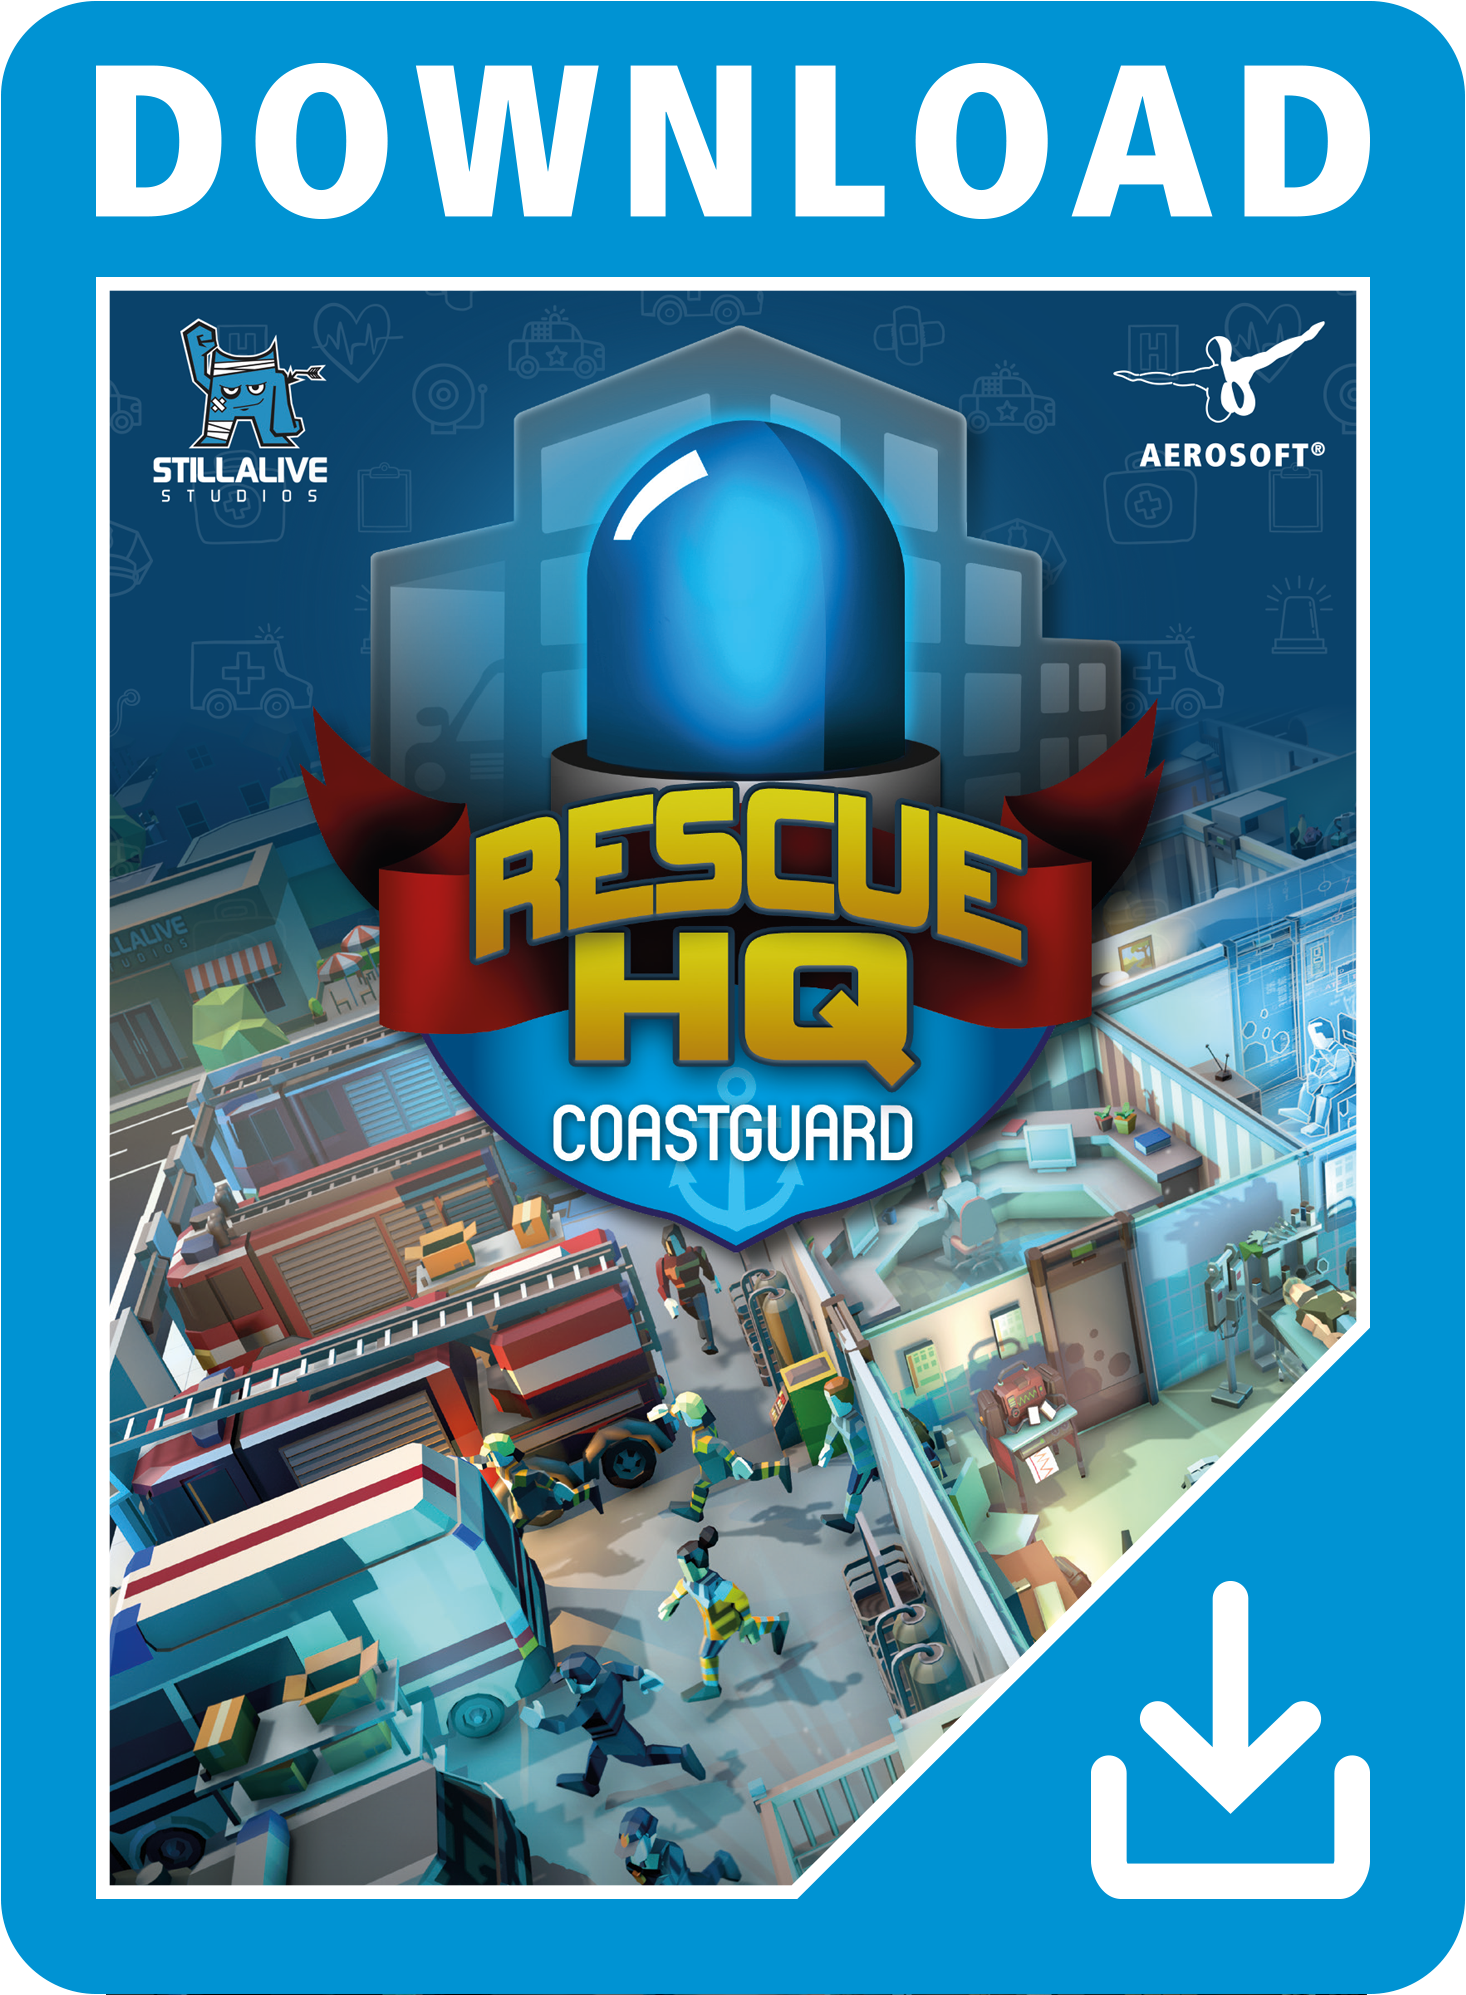 Packshot Rescue HQ DLC - Coastguard